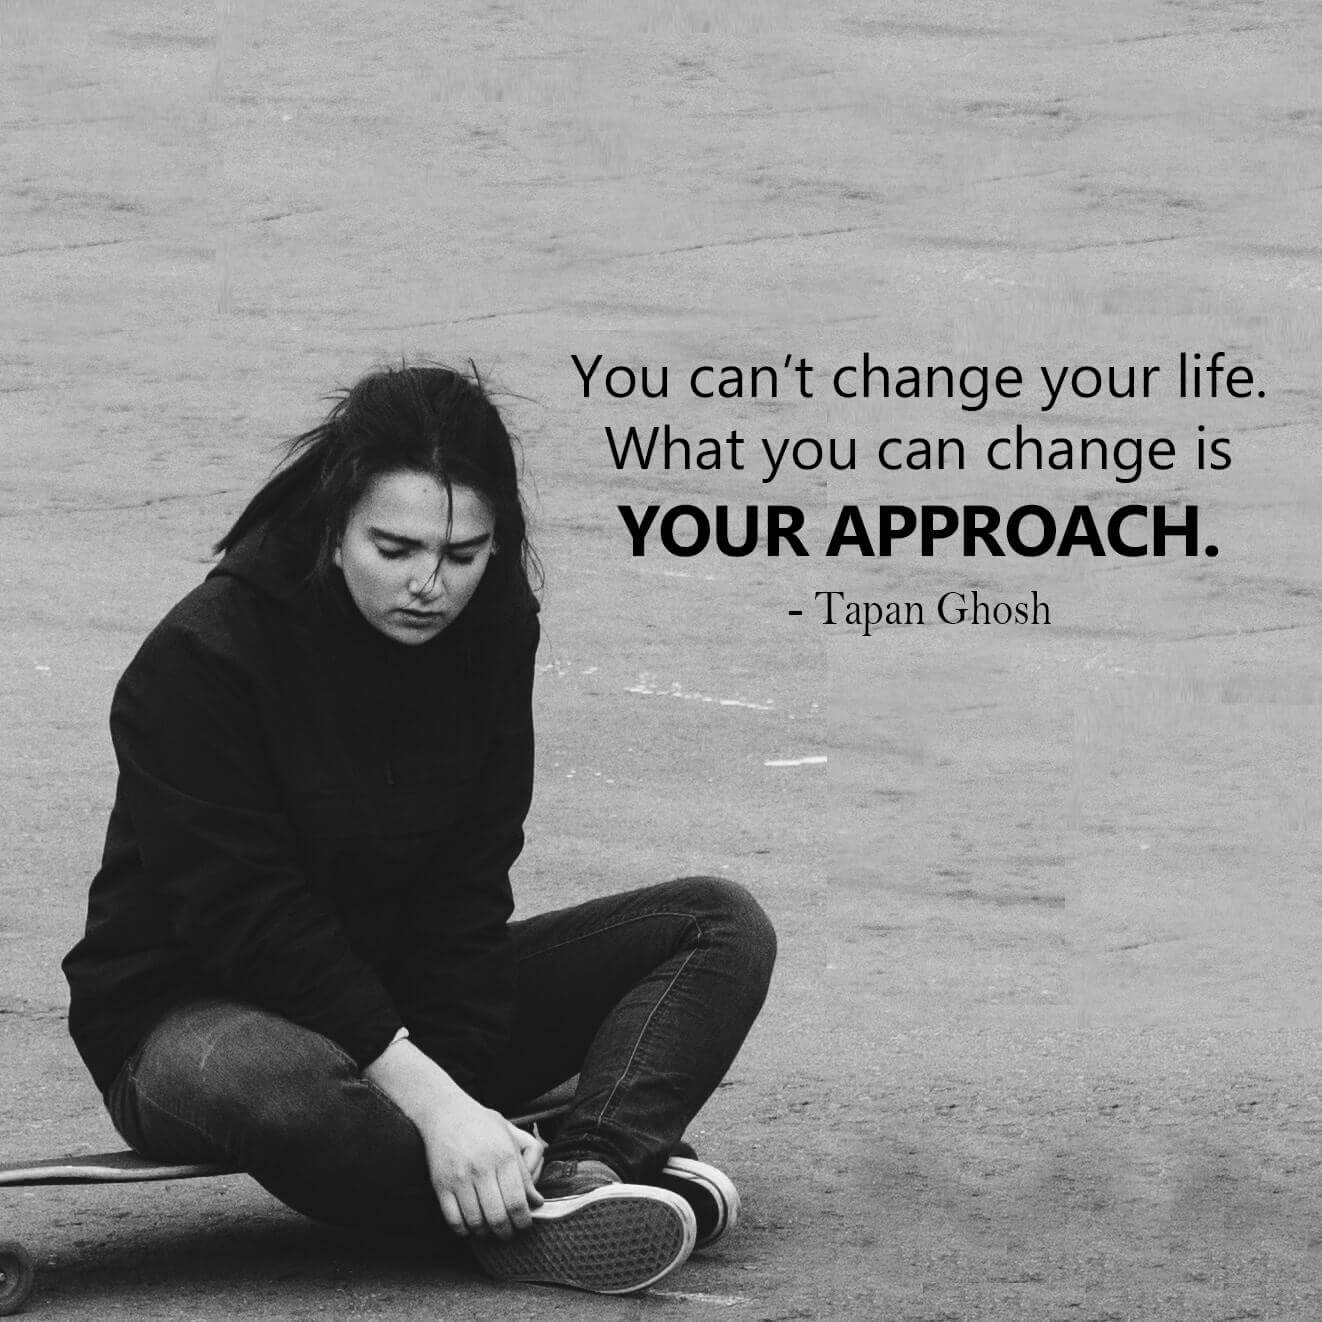 You can't change your life. What you can change is your approach.